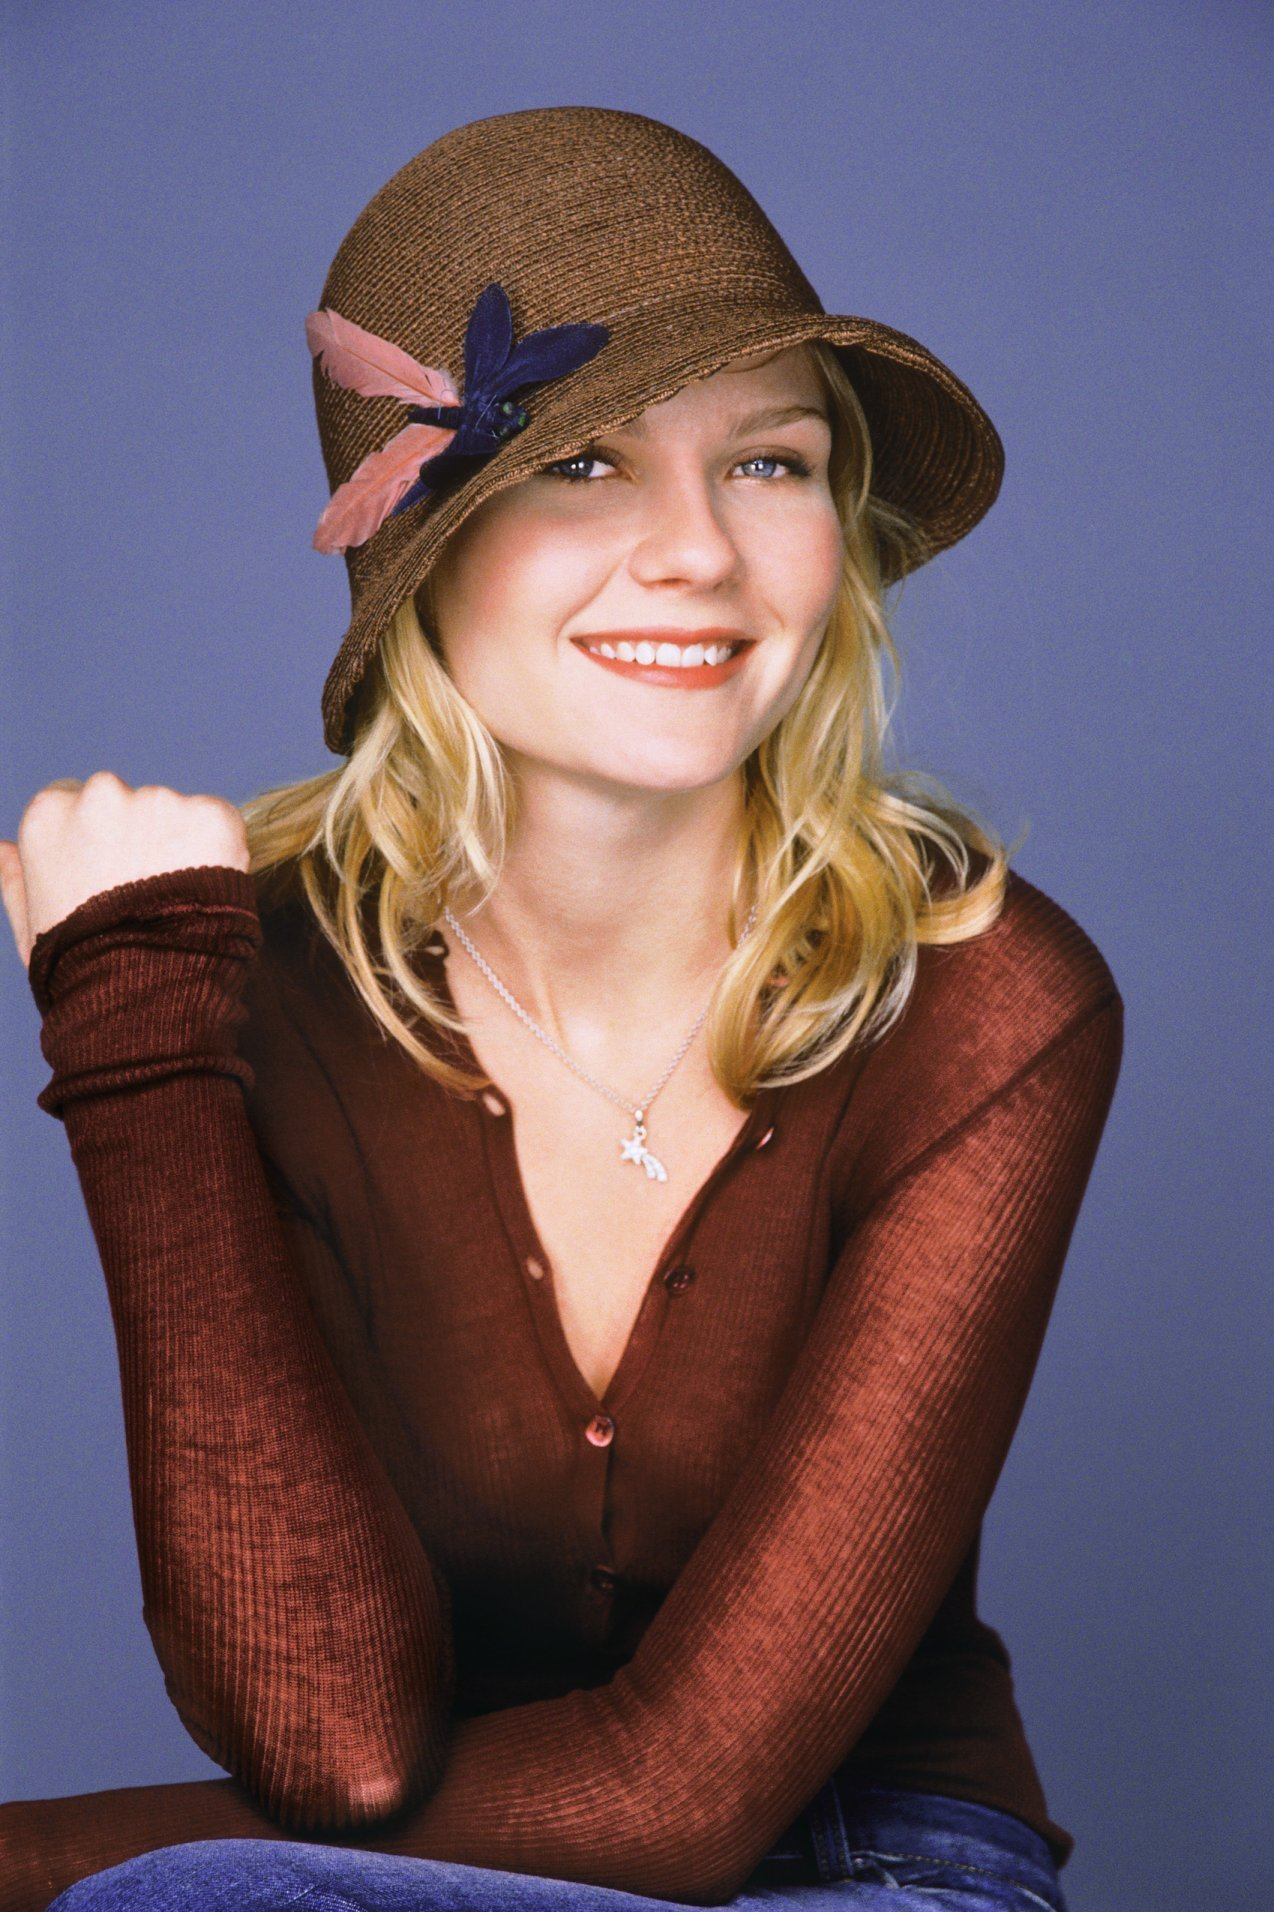 kirsten dunst Celebrity HD Wallpaper